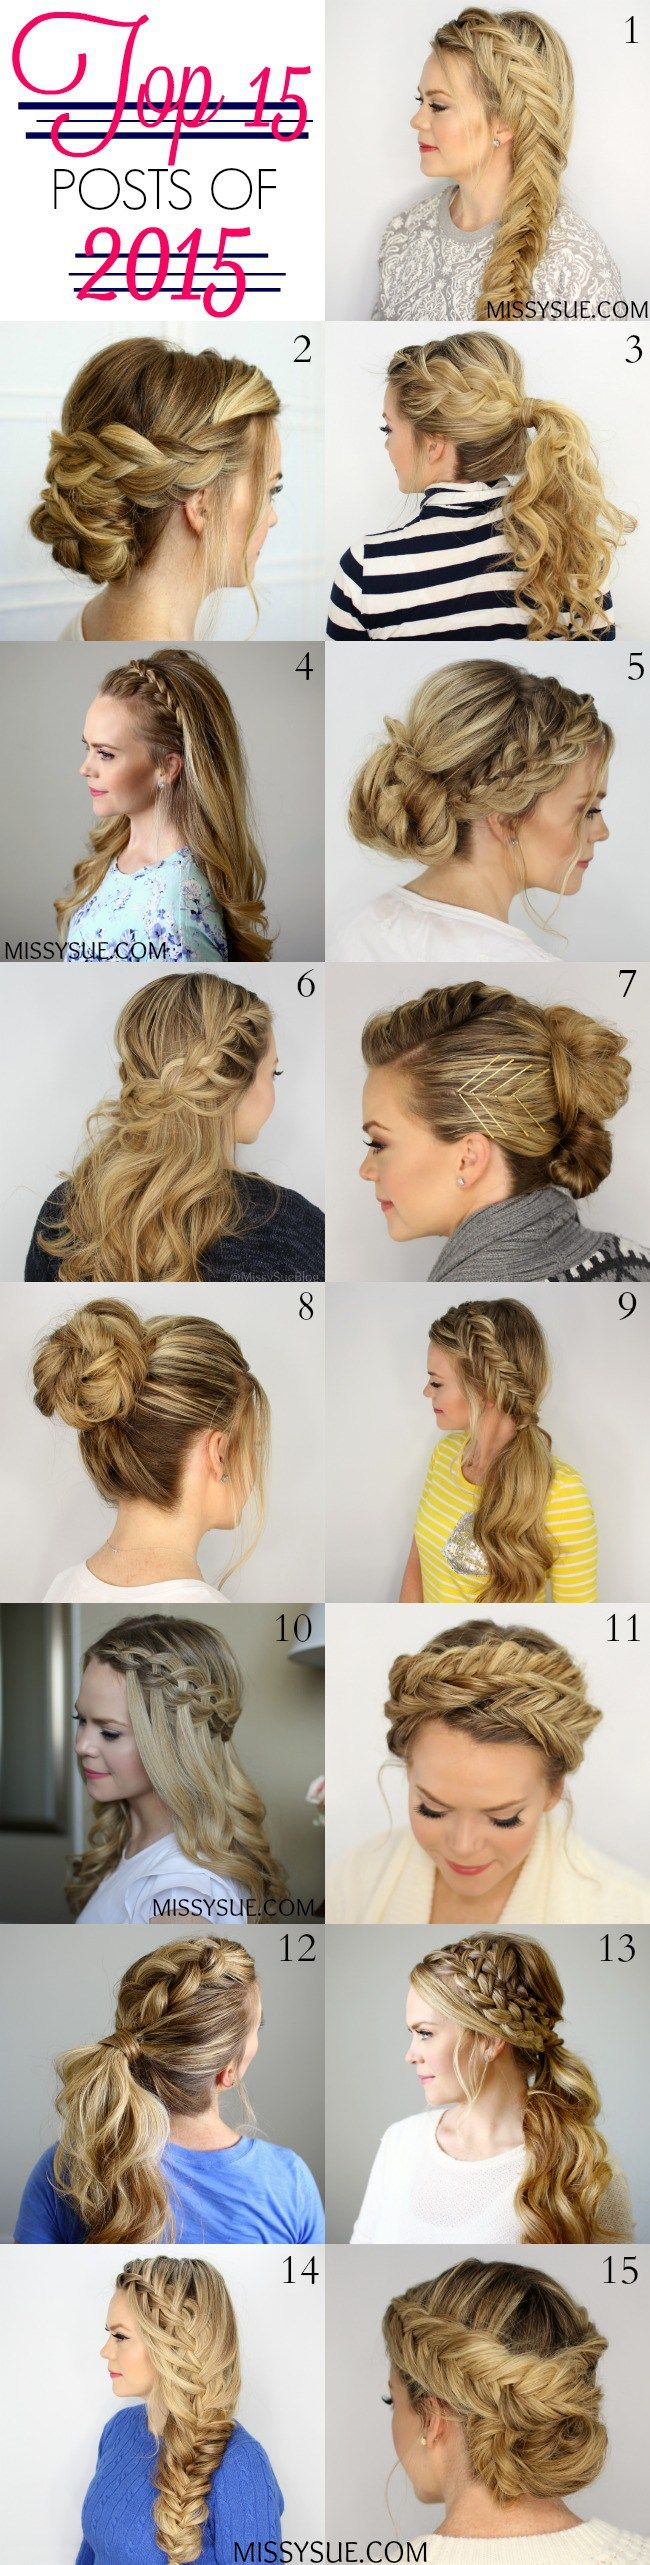 It's a new year which means a new of fun hairstyles, tutorials, and more! I wanted to quickly share the top 15 posts from this past year and tell you how much I loved loved seeing which hairstyleswere your favorite. It has been so much fun branching out and stretching my hair skills this past year withsuch a wide assortment of hairstyles and braiding techniques. I am so excited to see what the new year has in store and I am already planning some other great tutorials. Be sure to stay…